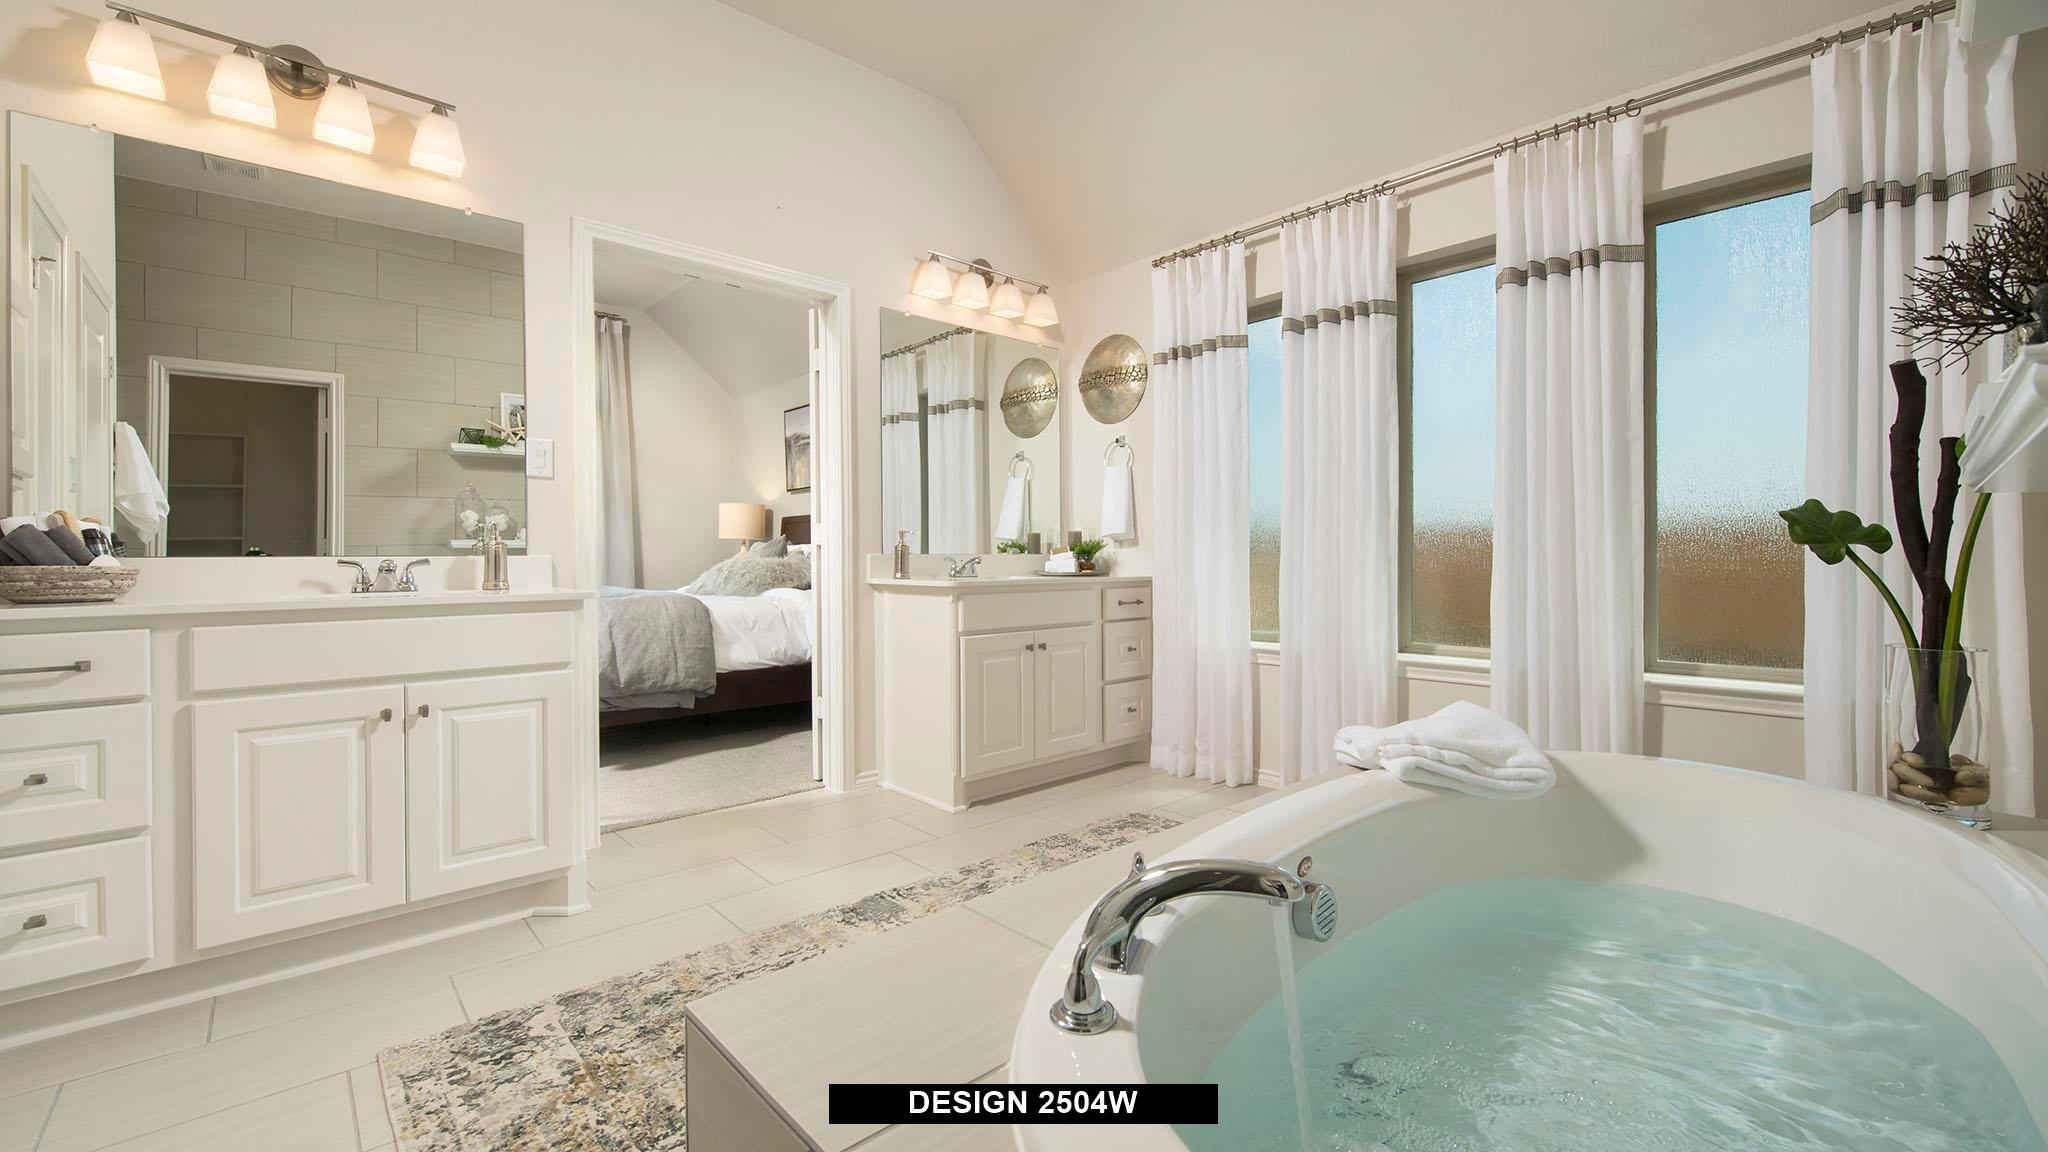 Bathroom featured in the 2504W By Perry Homes in Houston, TX